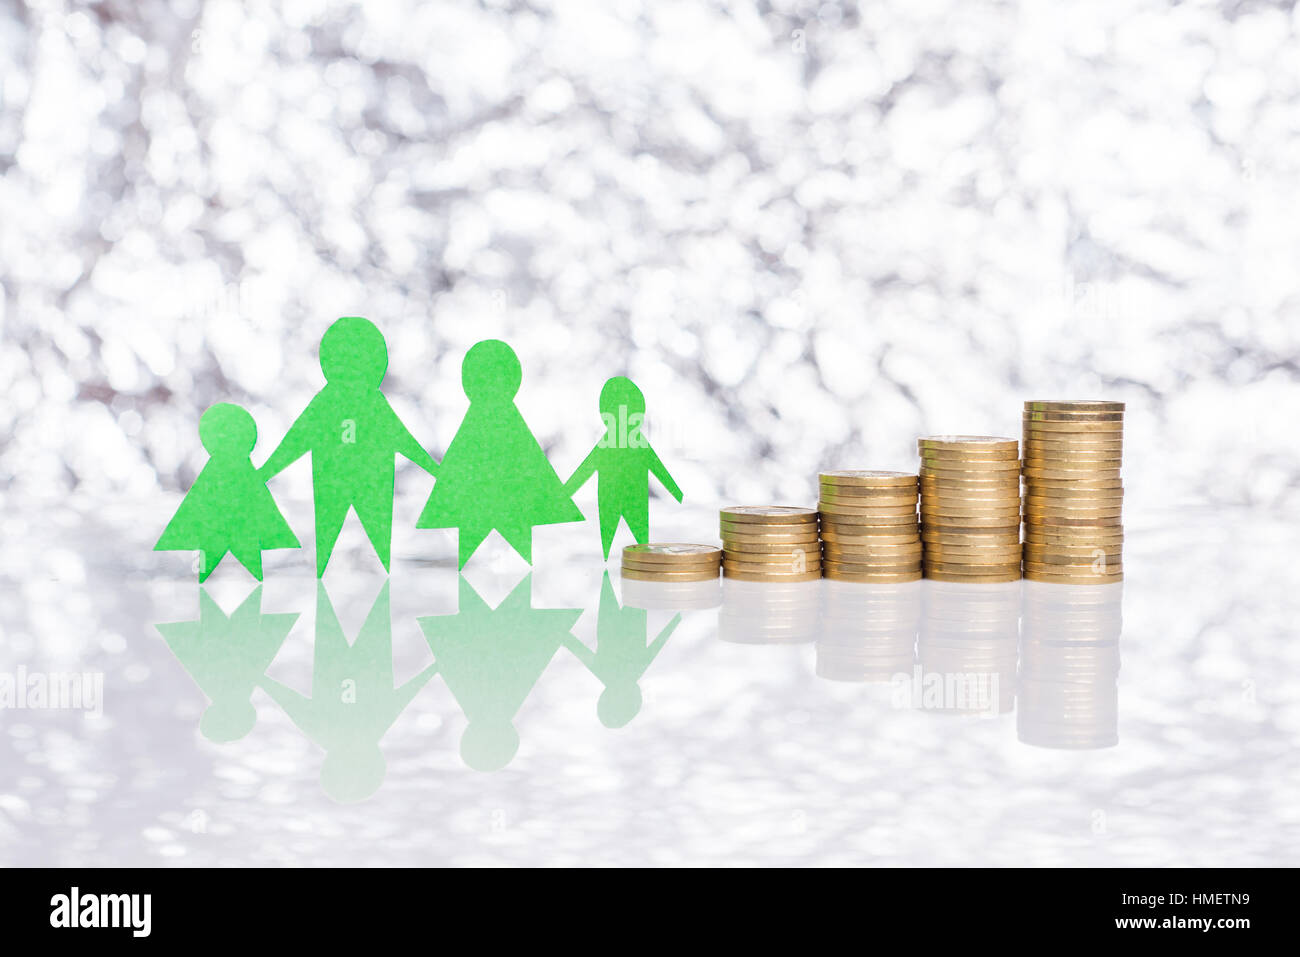 Rising social benefits for families. - Stock Image